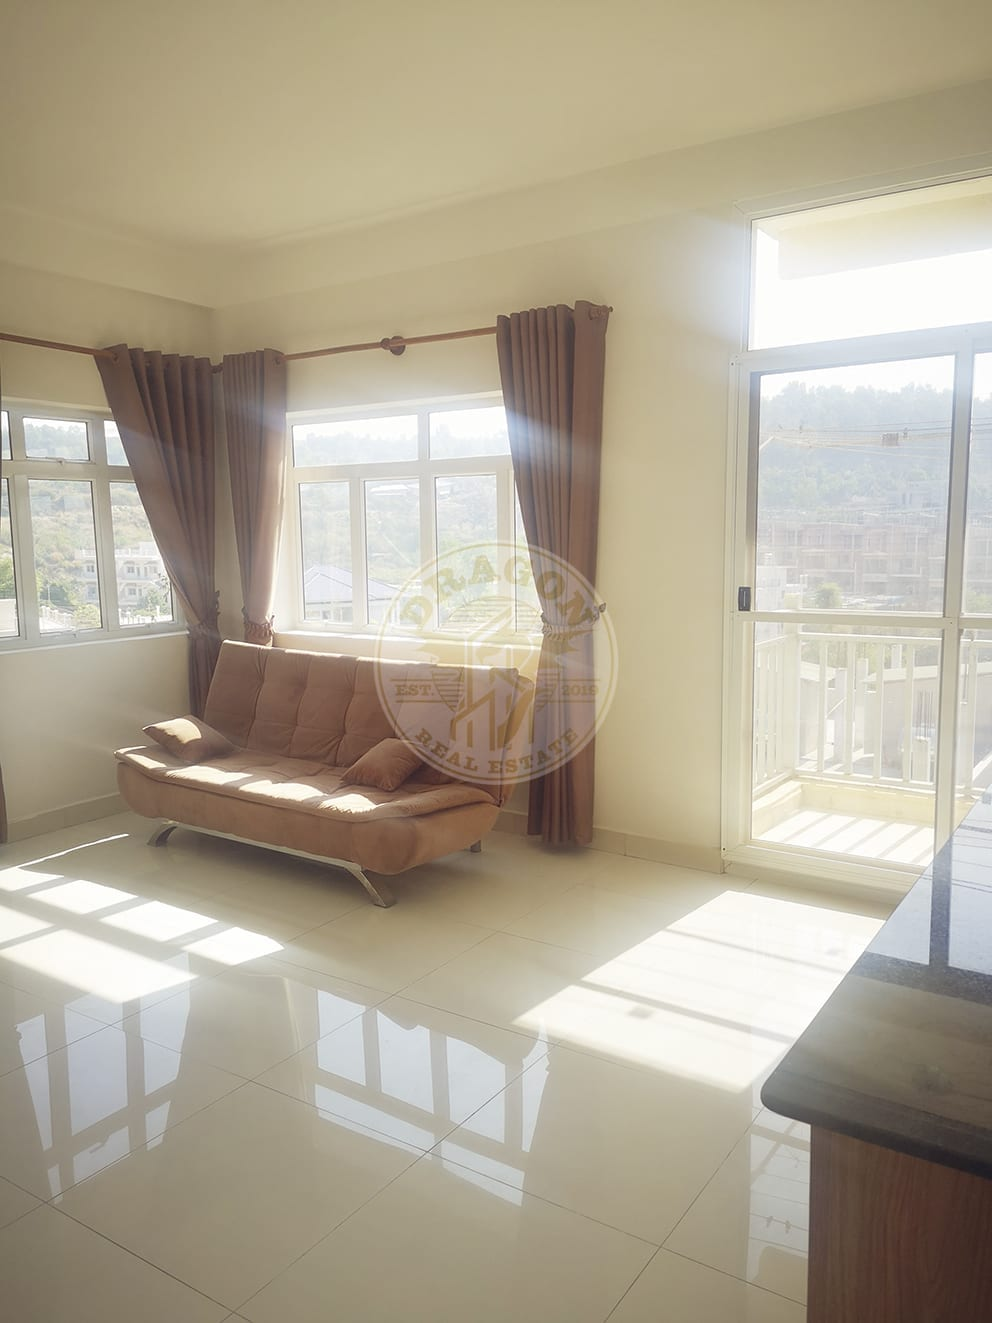 Apartment w/ Two balconies for Rent. Rooms for Rent in Sihanoukville Cambodia